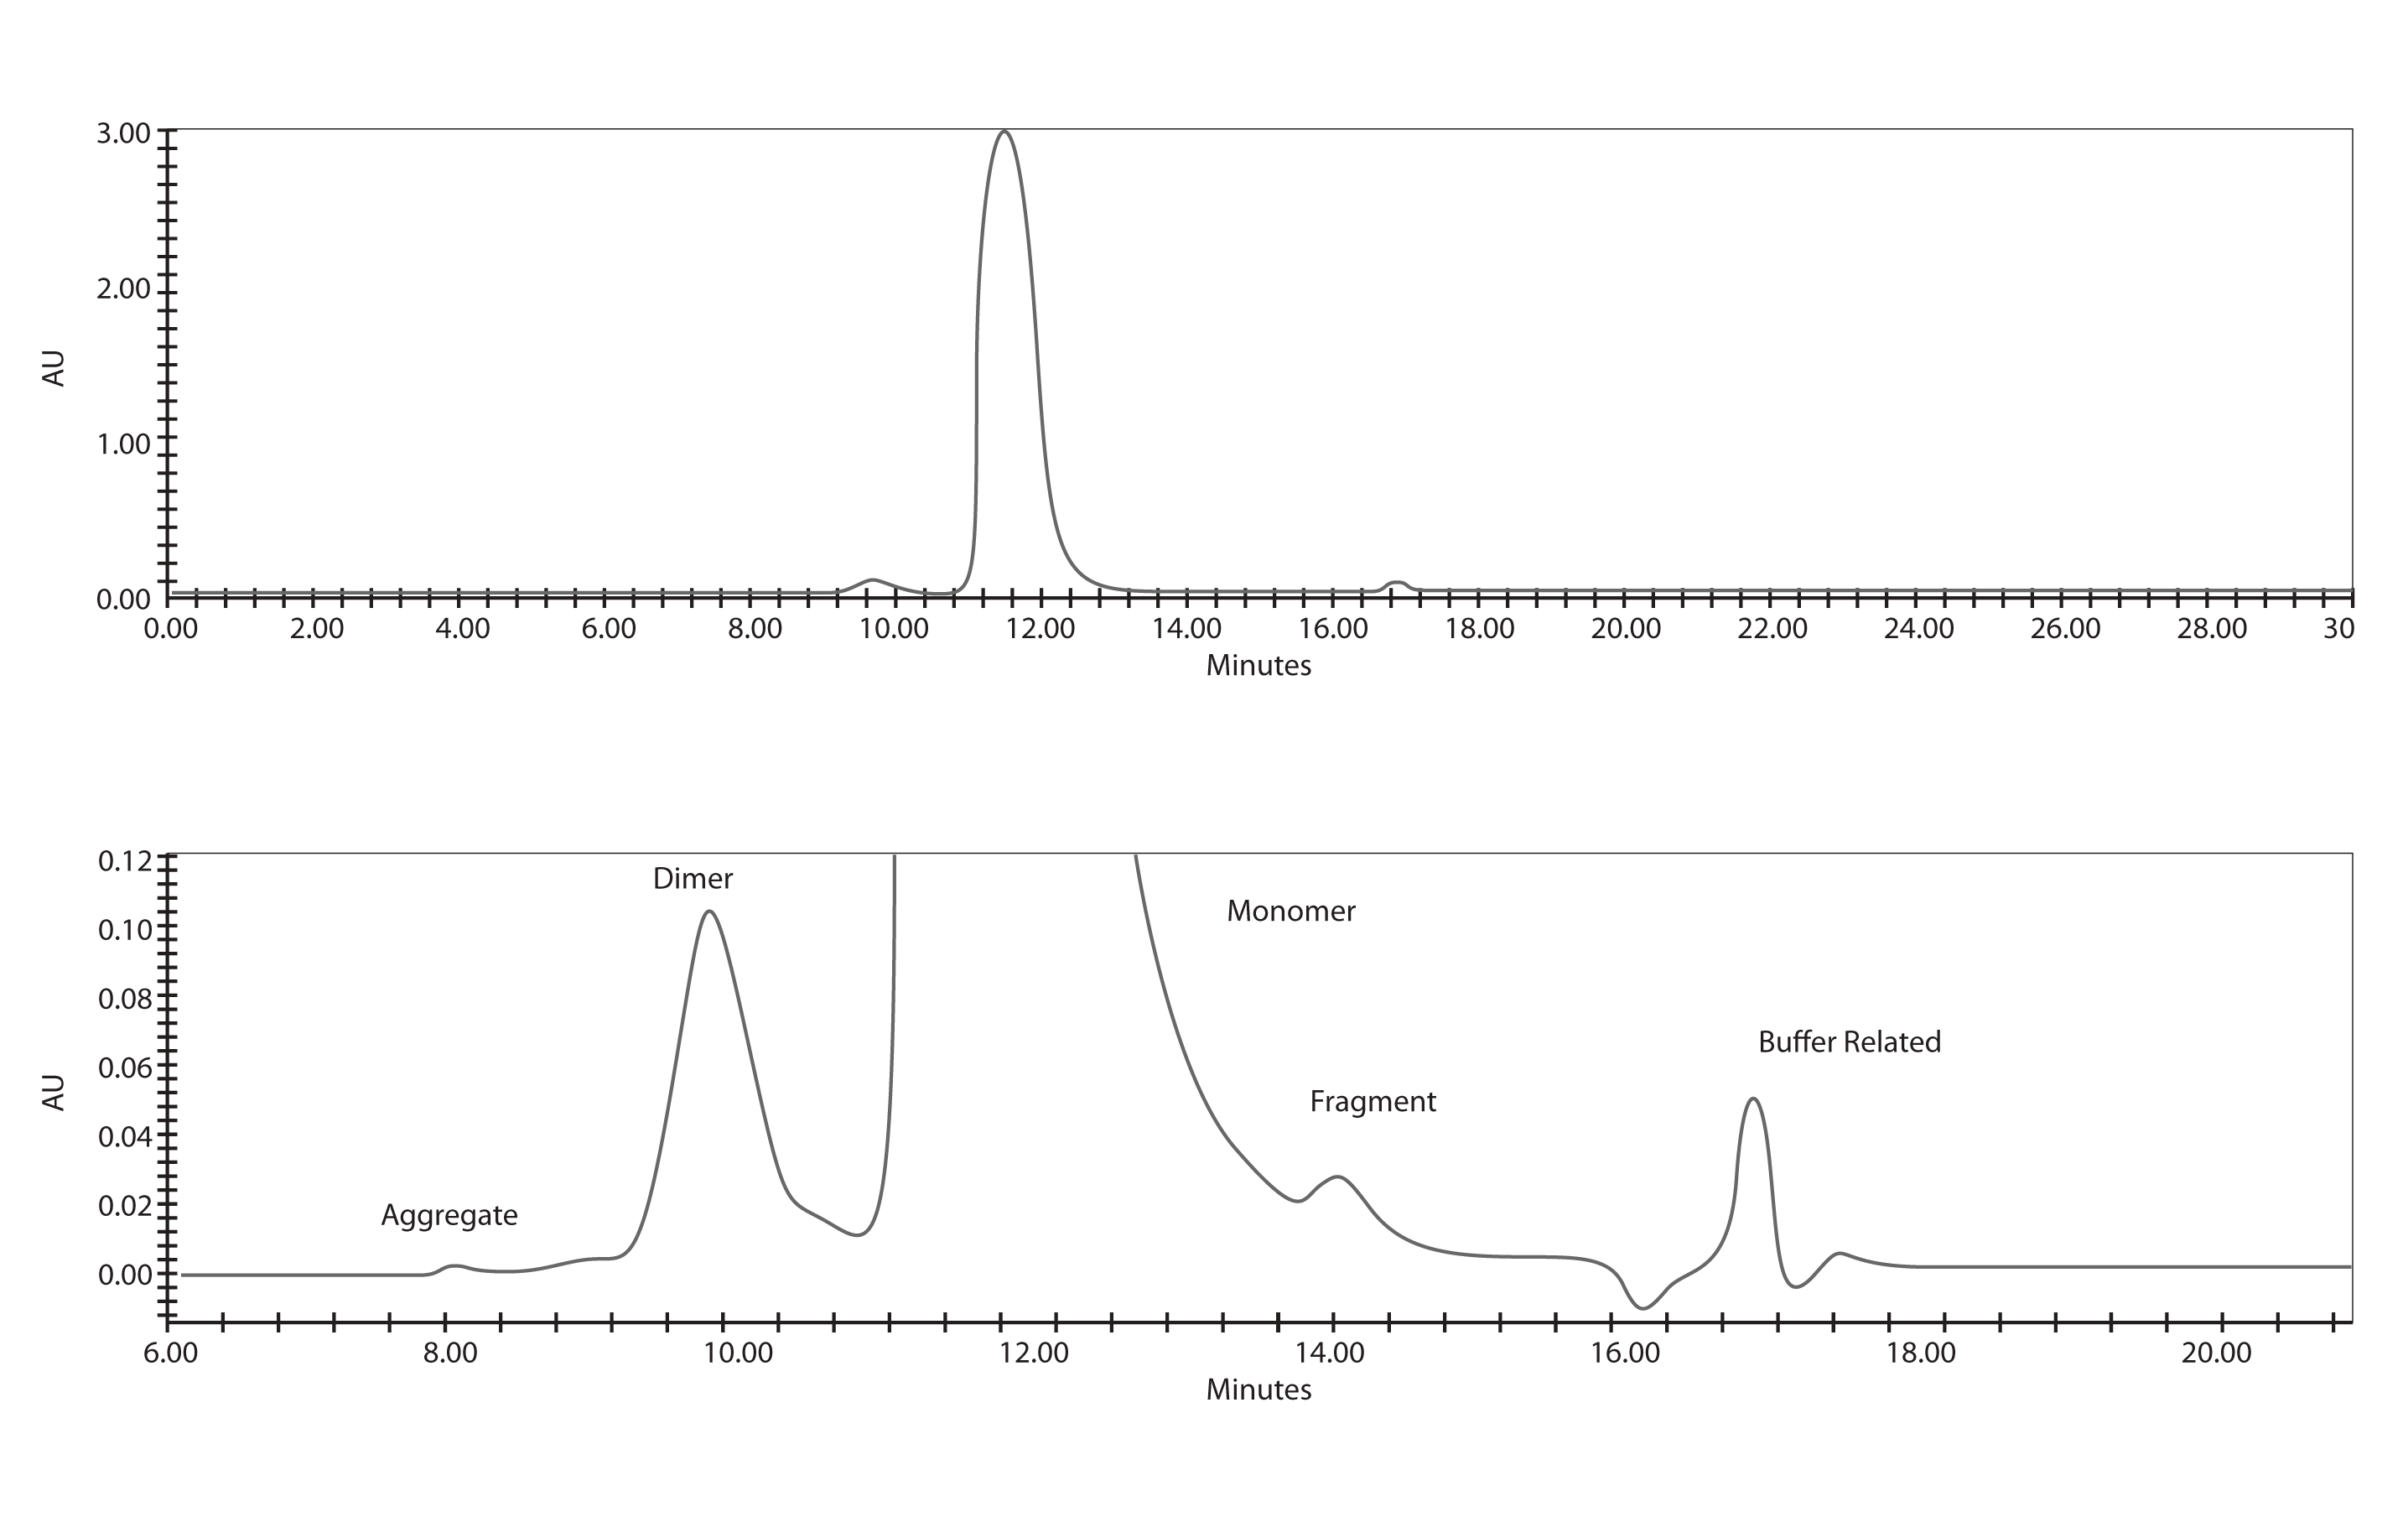 Figure 3. HPLC size exclusion of IgG sample in formulation buffer, 300 μg injected.